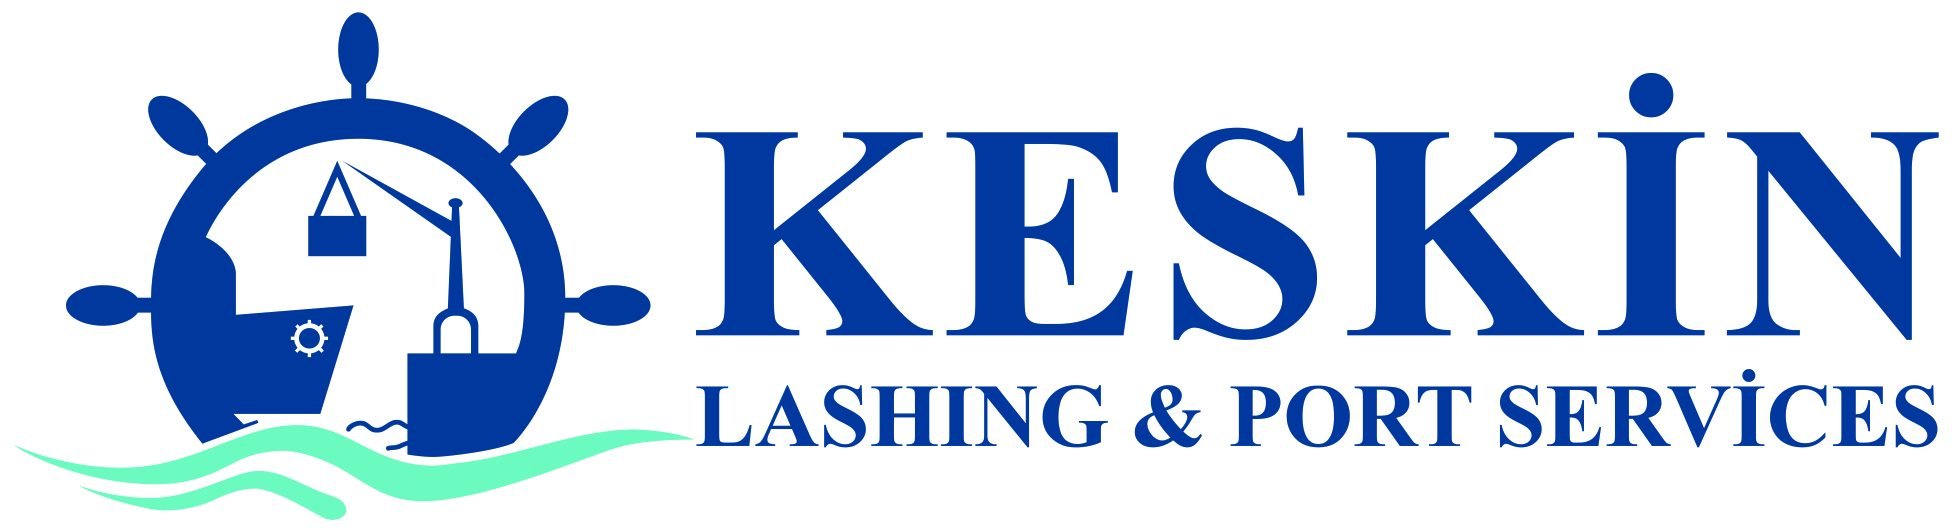 LASİING & PORT SERVİCES